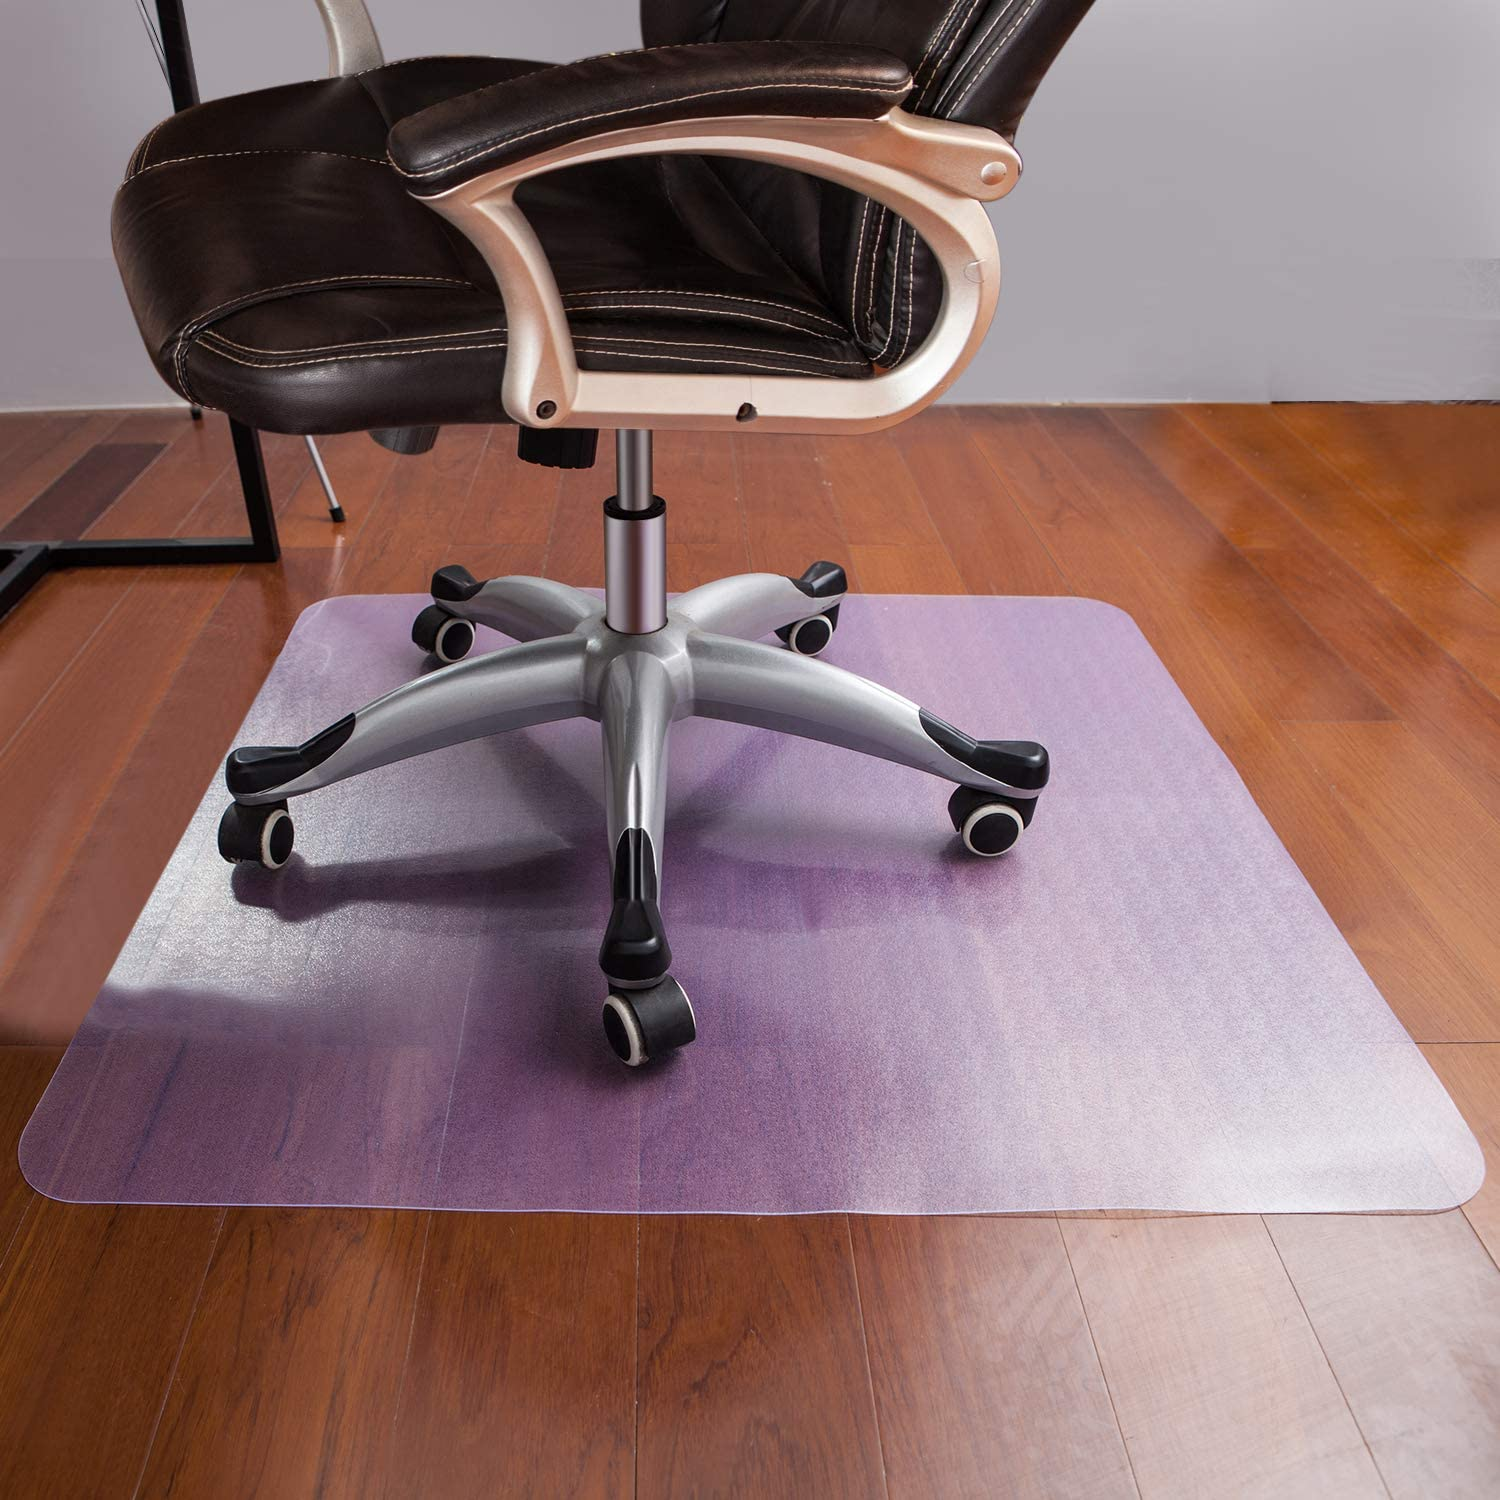 Komene Office Chair Mat 48''×40'' for Hardwood Floor,Non Toxic and BPA Free Clear Thick Mat